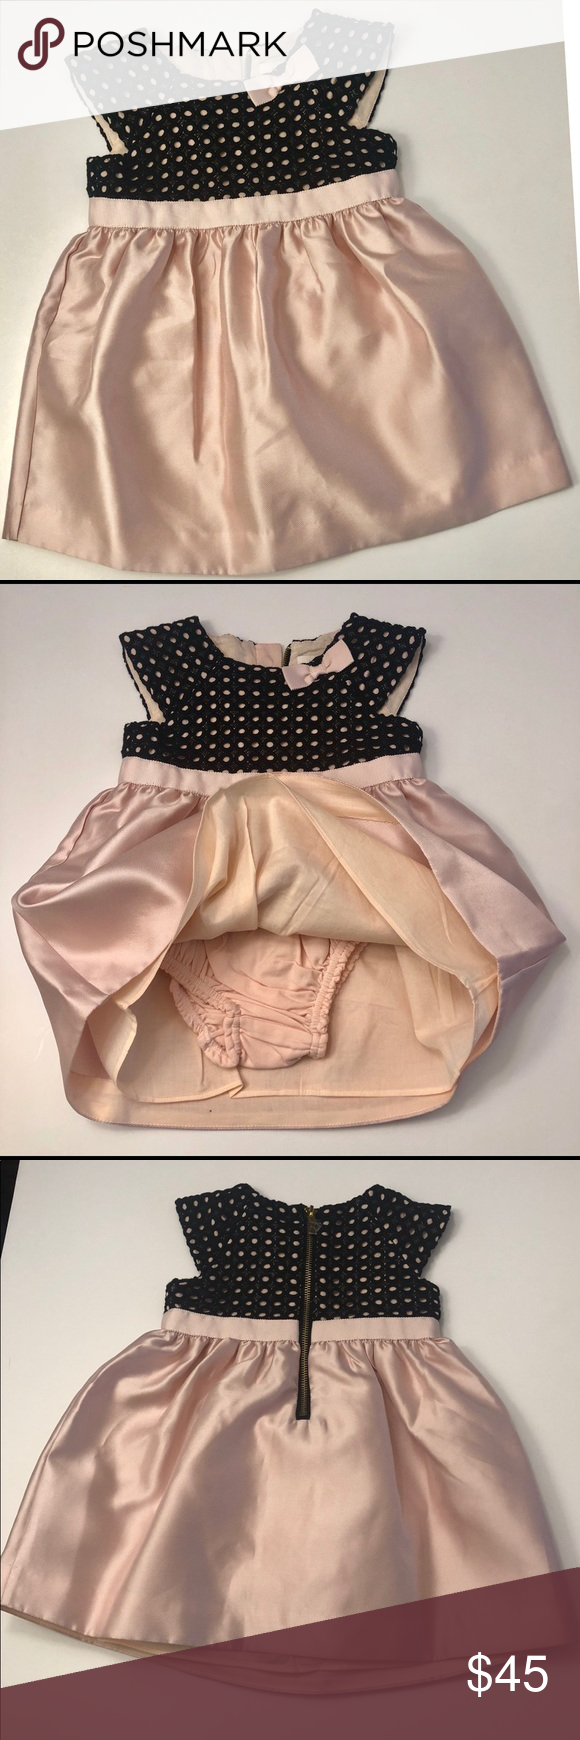 Brand new kate spade kids dress in my posh picks pinterest